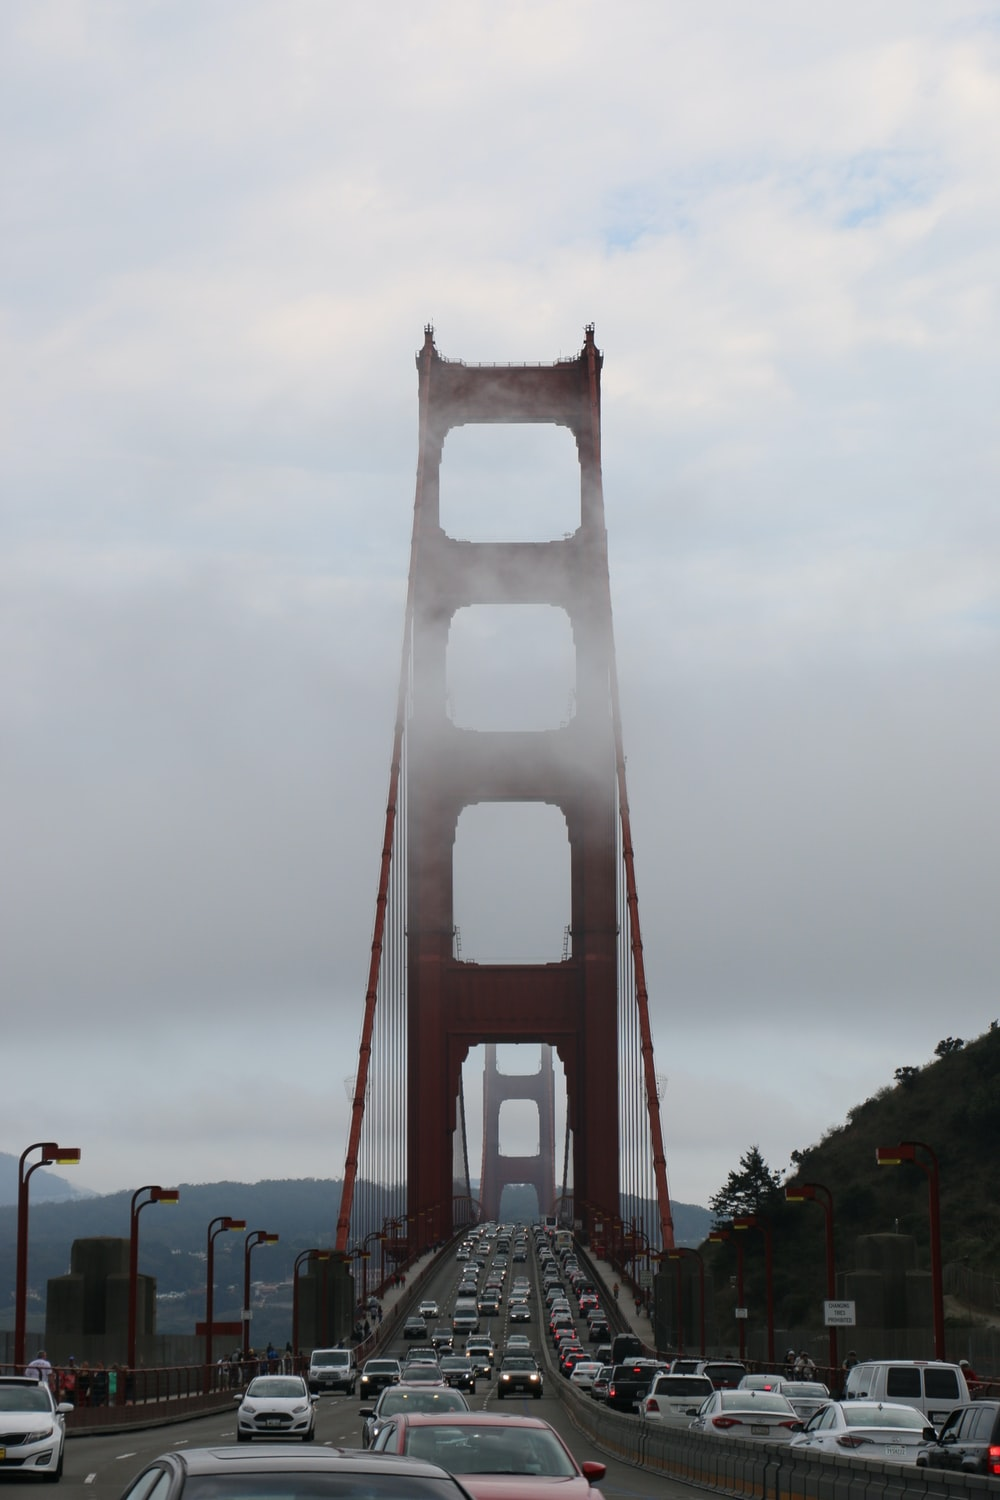 golden gate bridge under white clouds during daytime